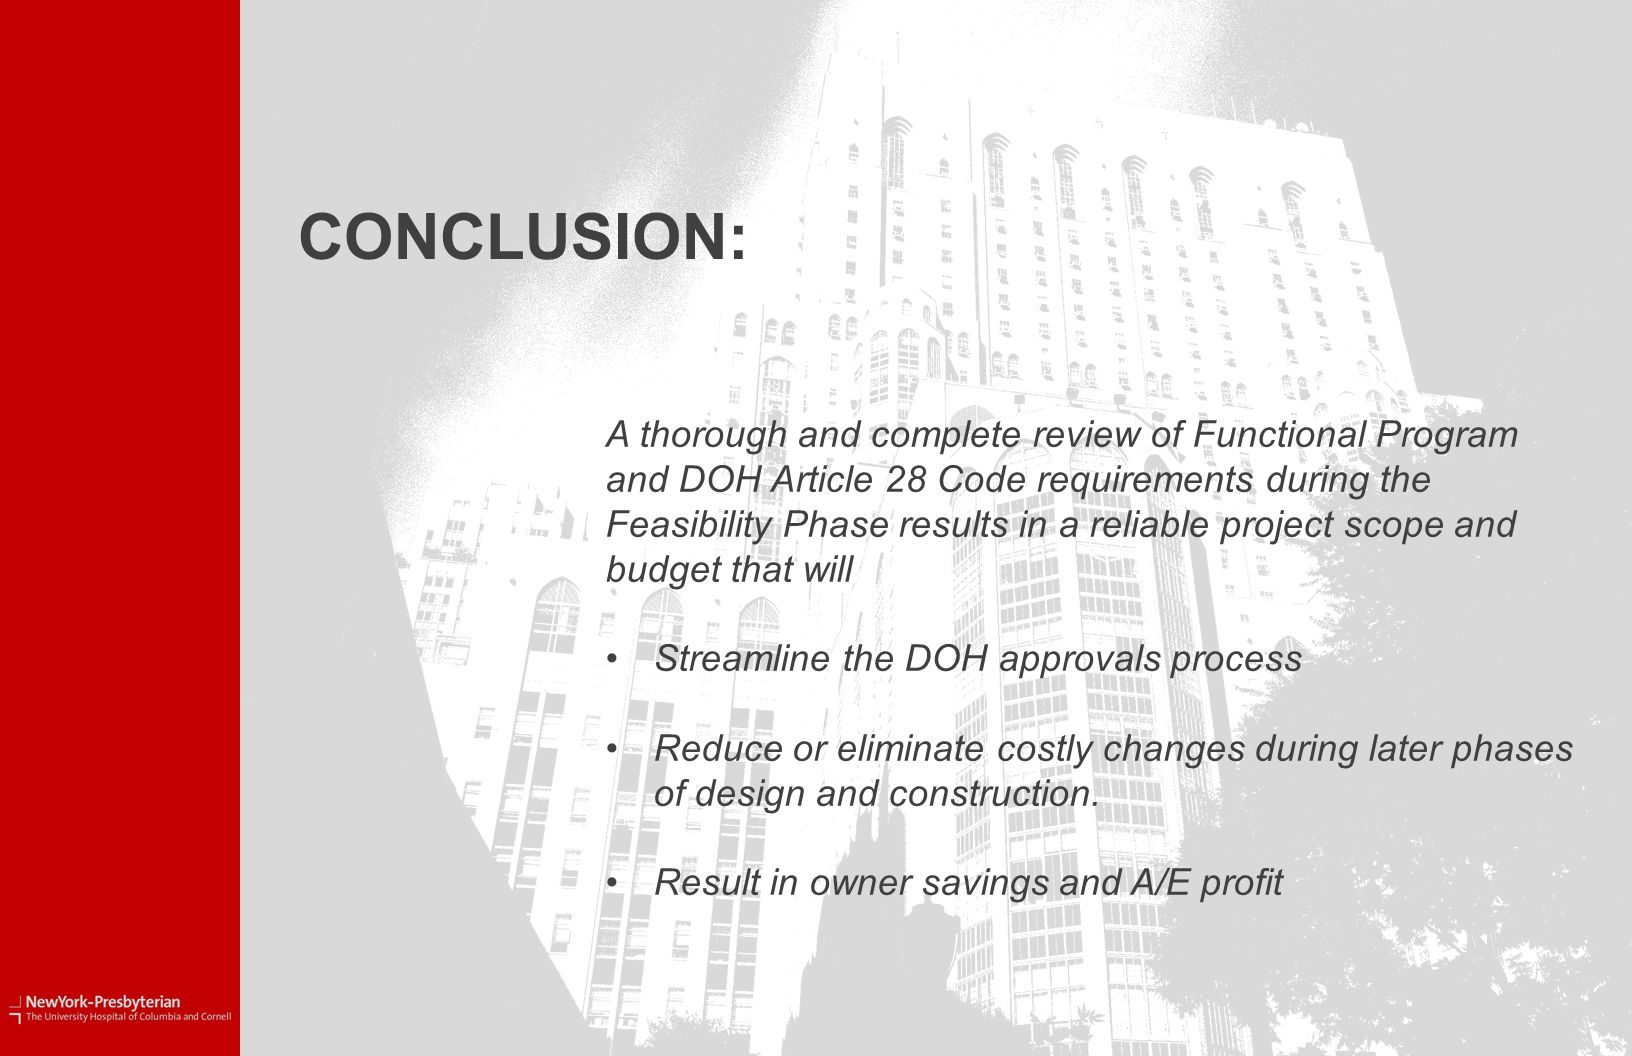 CONCLUSION: A thorough and complete review of Functional Program and DOH Article 28 Code requirements during the Feasibility Phase results in a reliable project scope and budget that will Streamline the DOH approvals process Reduce or eliminate costly changes during later phases of design and construction.